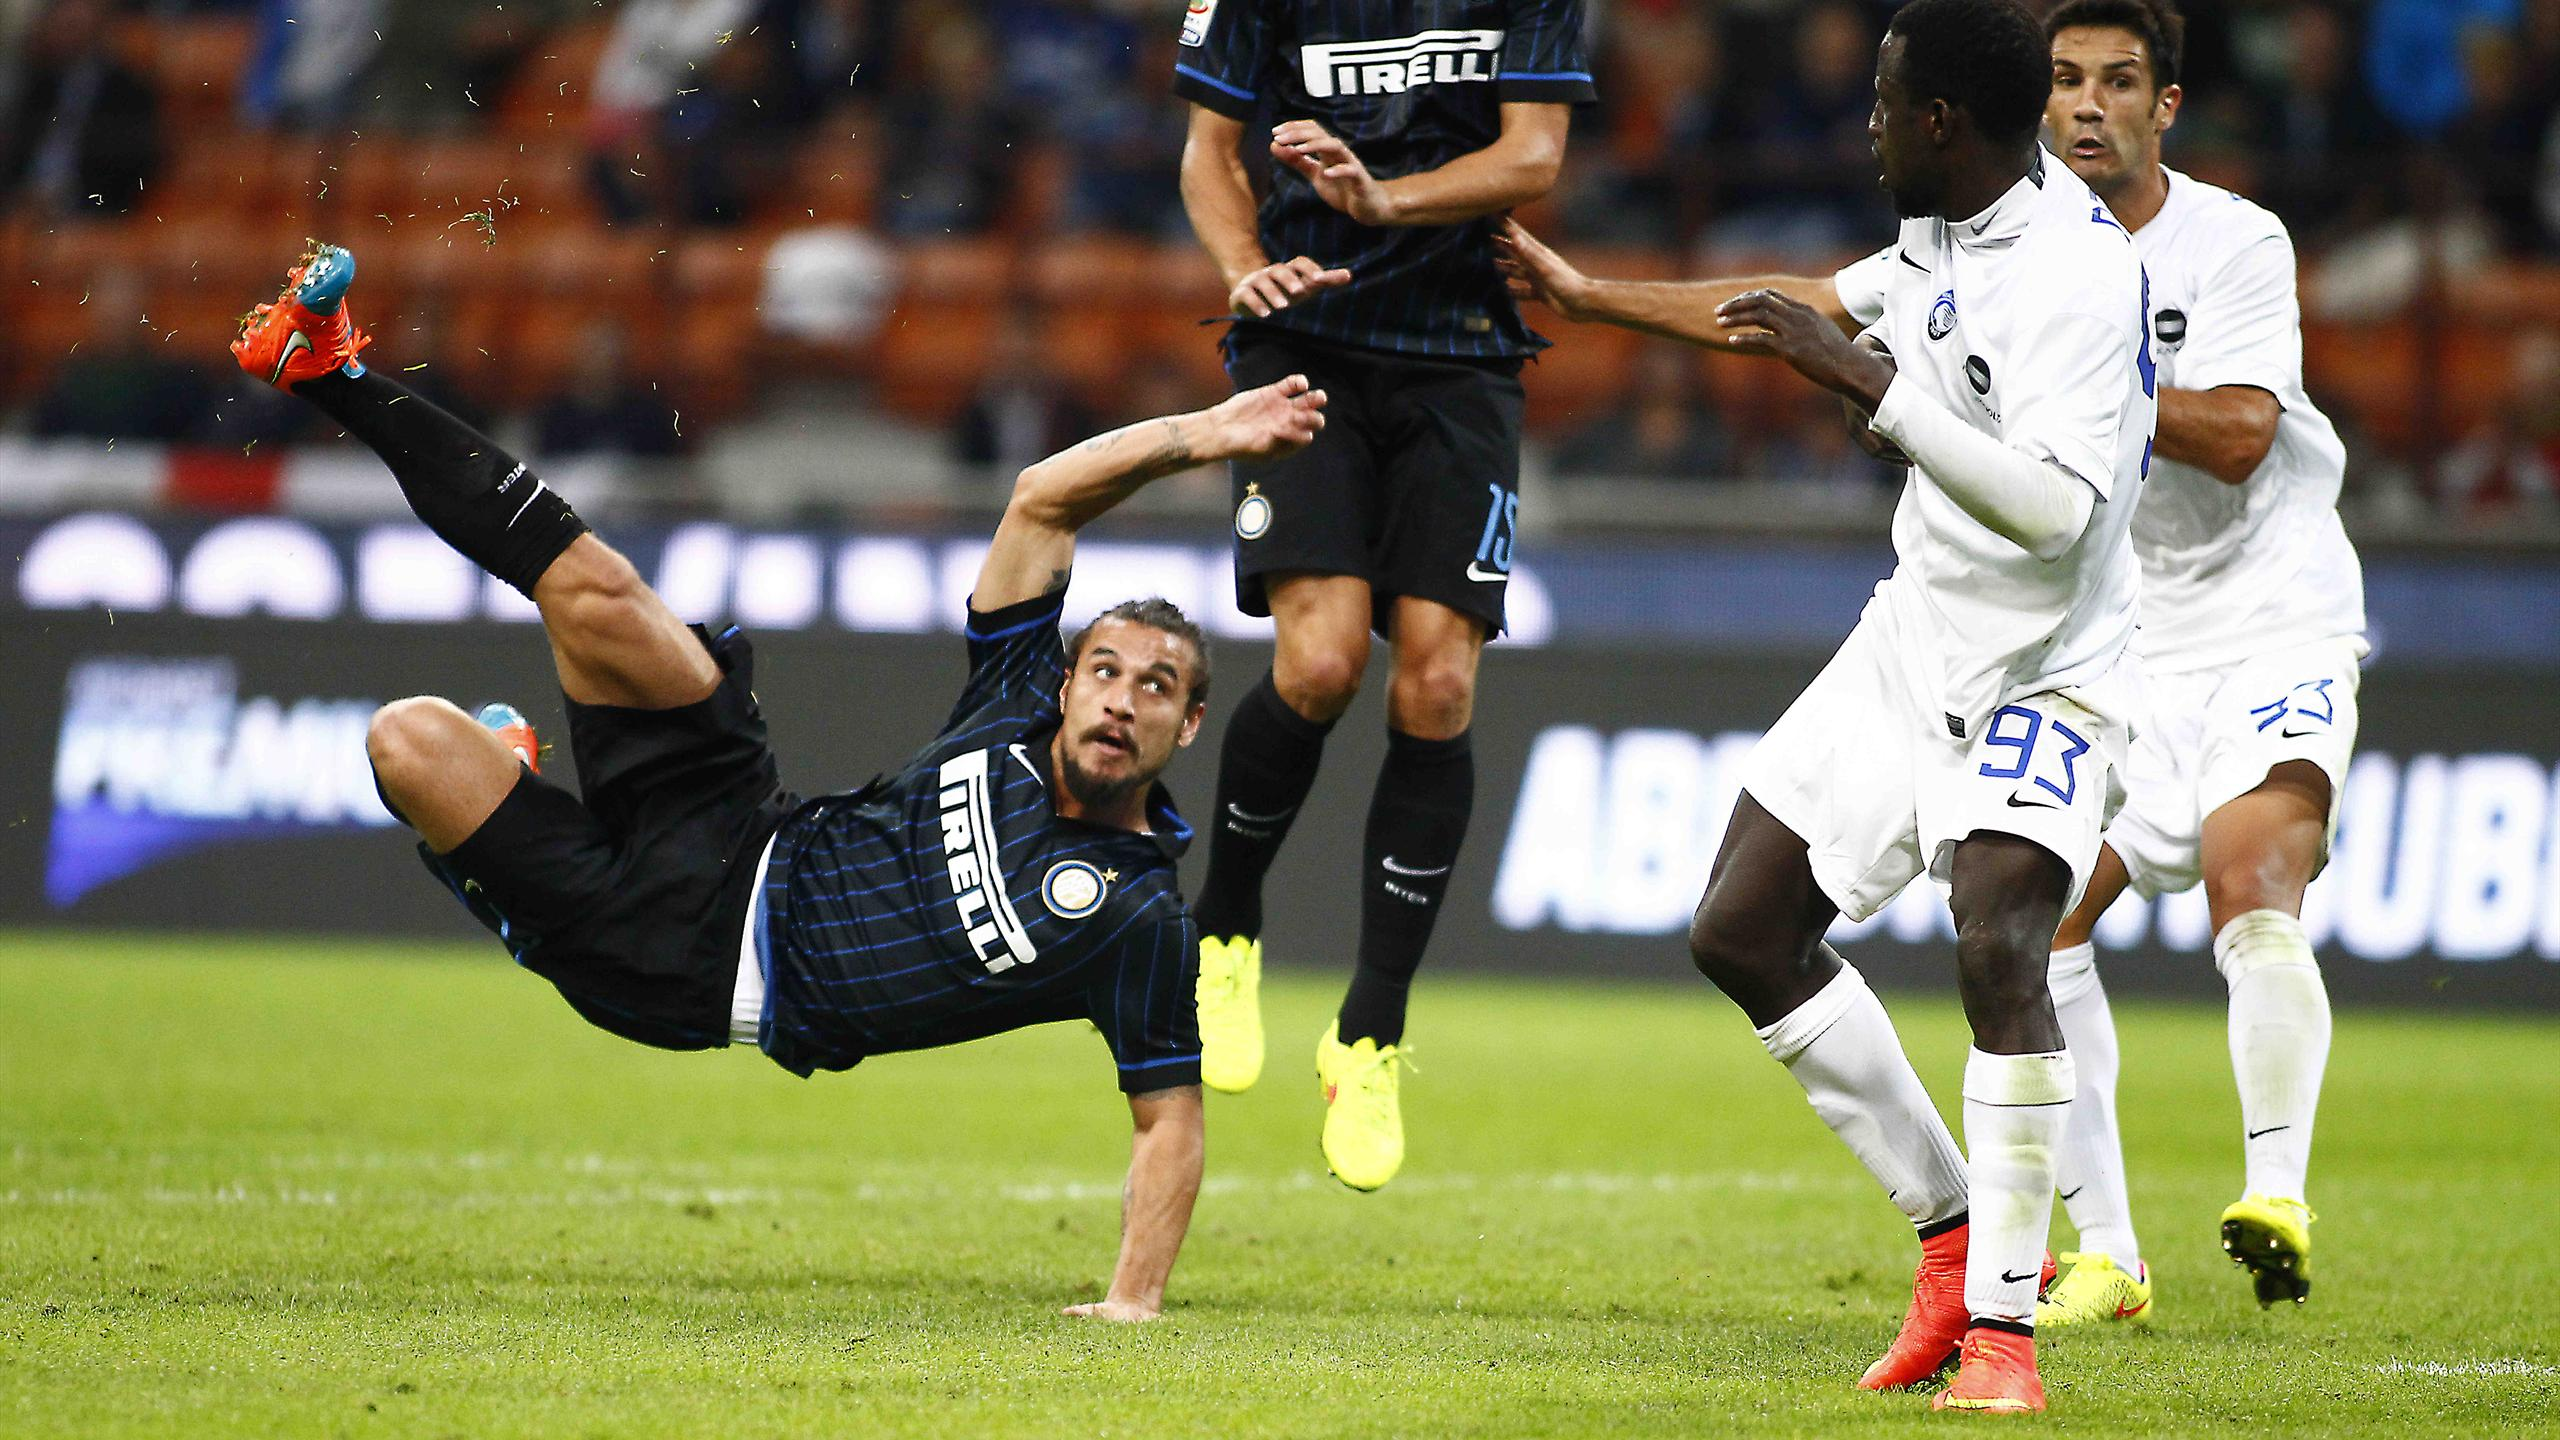 Video: Inter Milan vs Atalanta